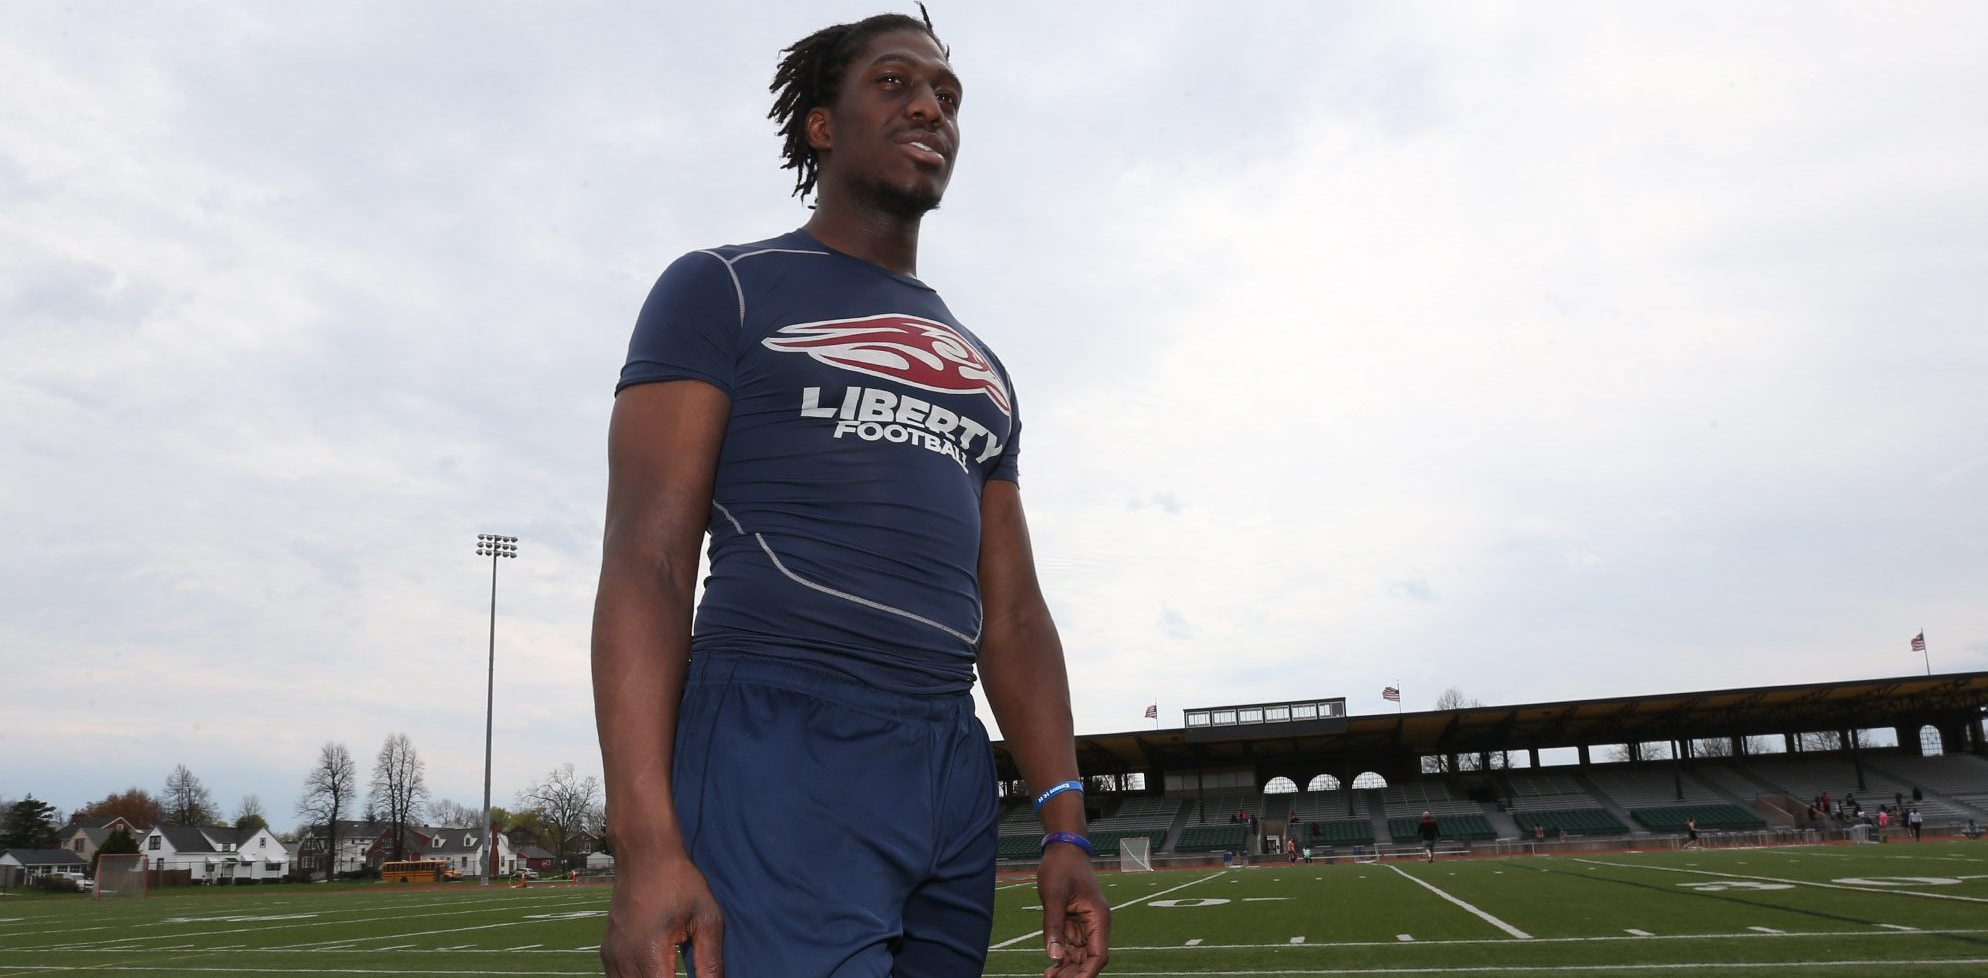 2008 Lafayette High School graduate Dominique Davis found his football talents at Liberty University. (James P. McCoy/Buffalo News)